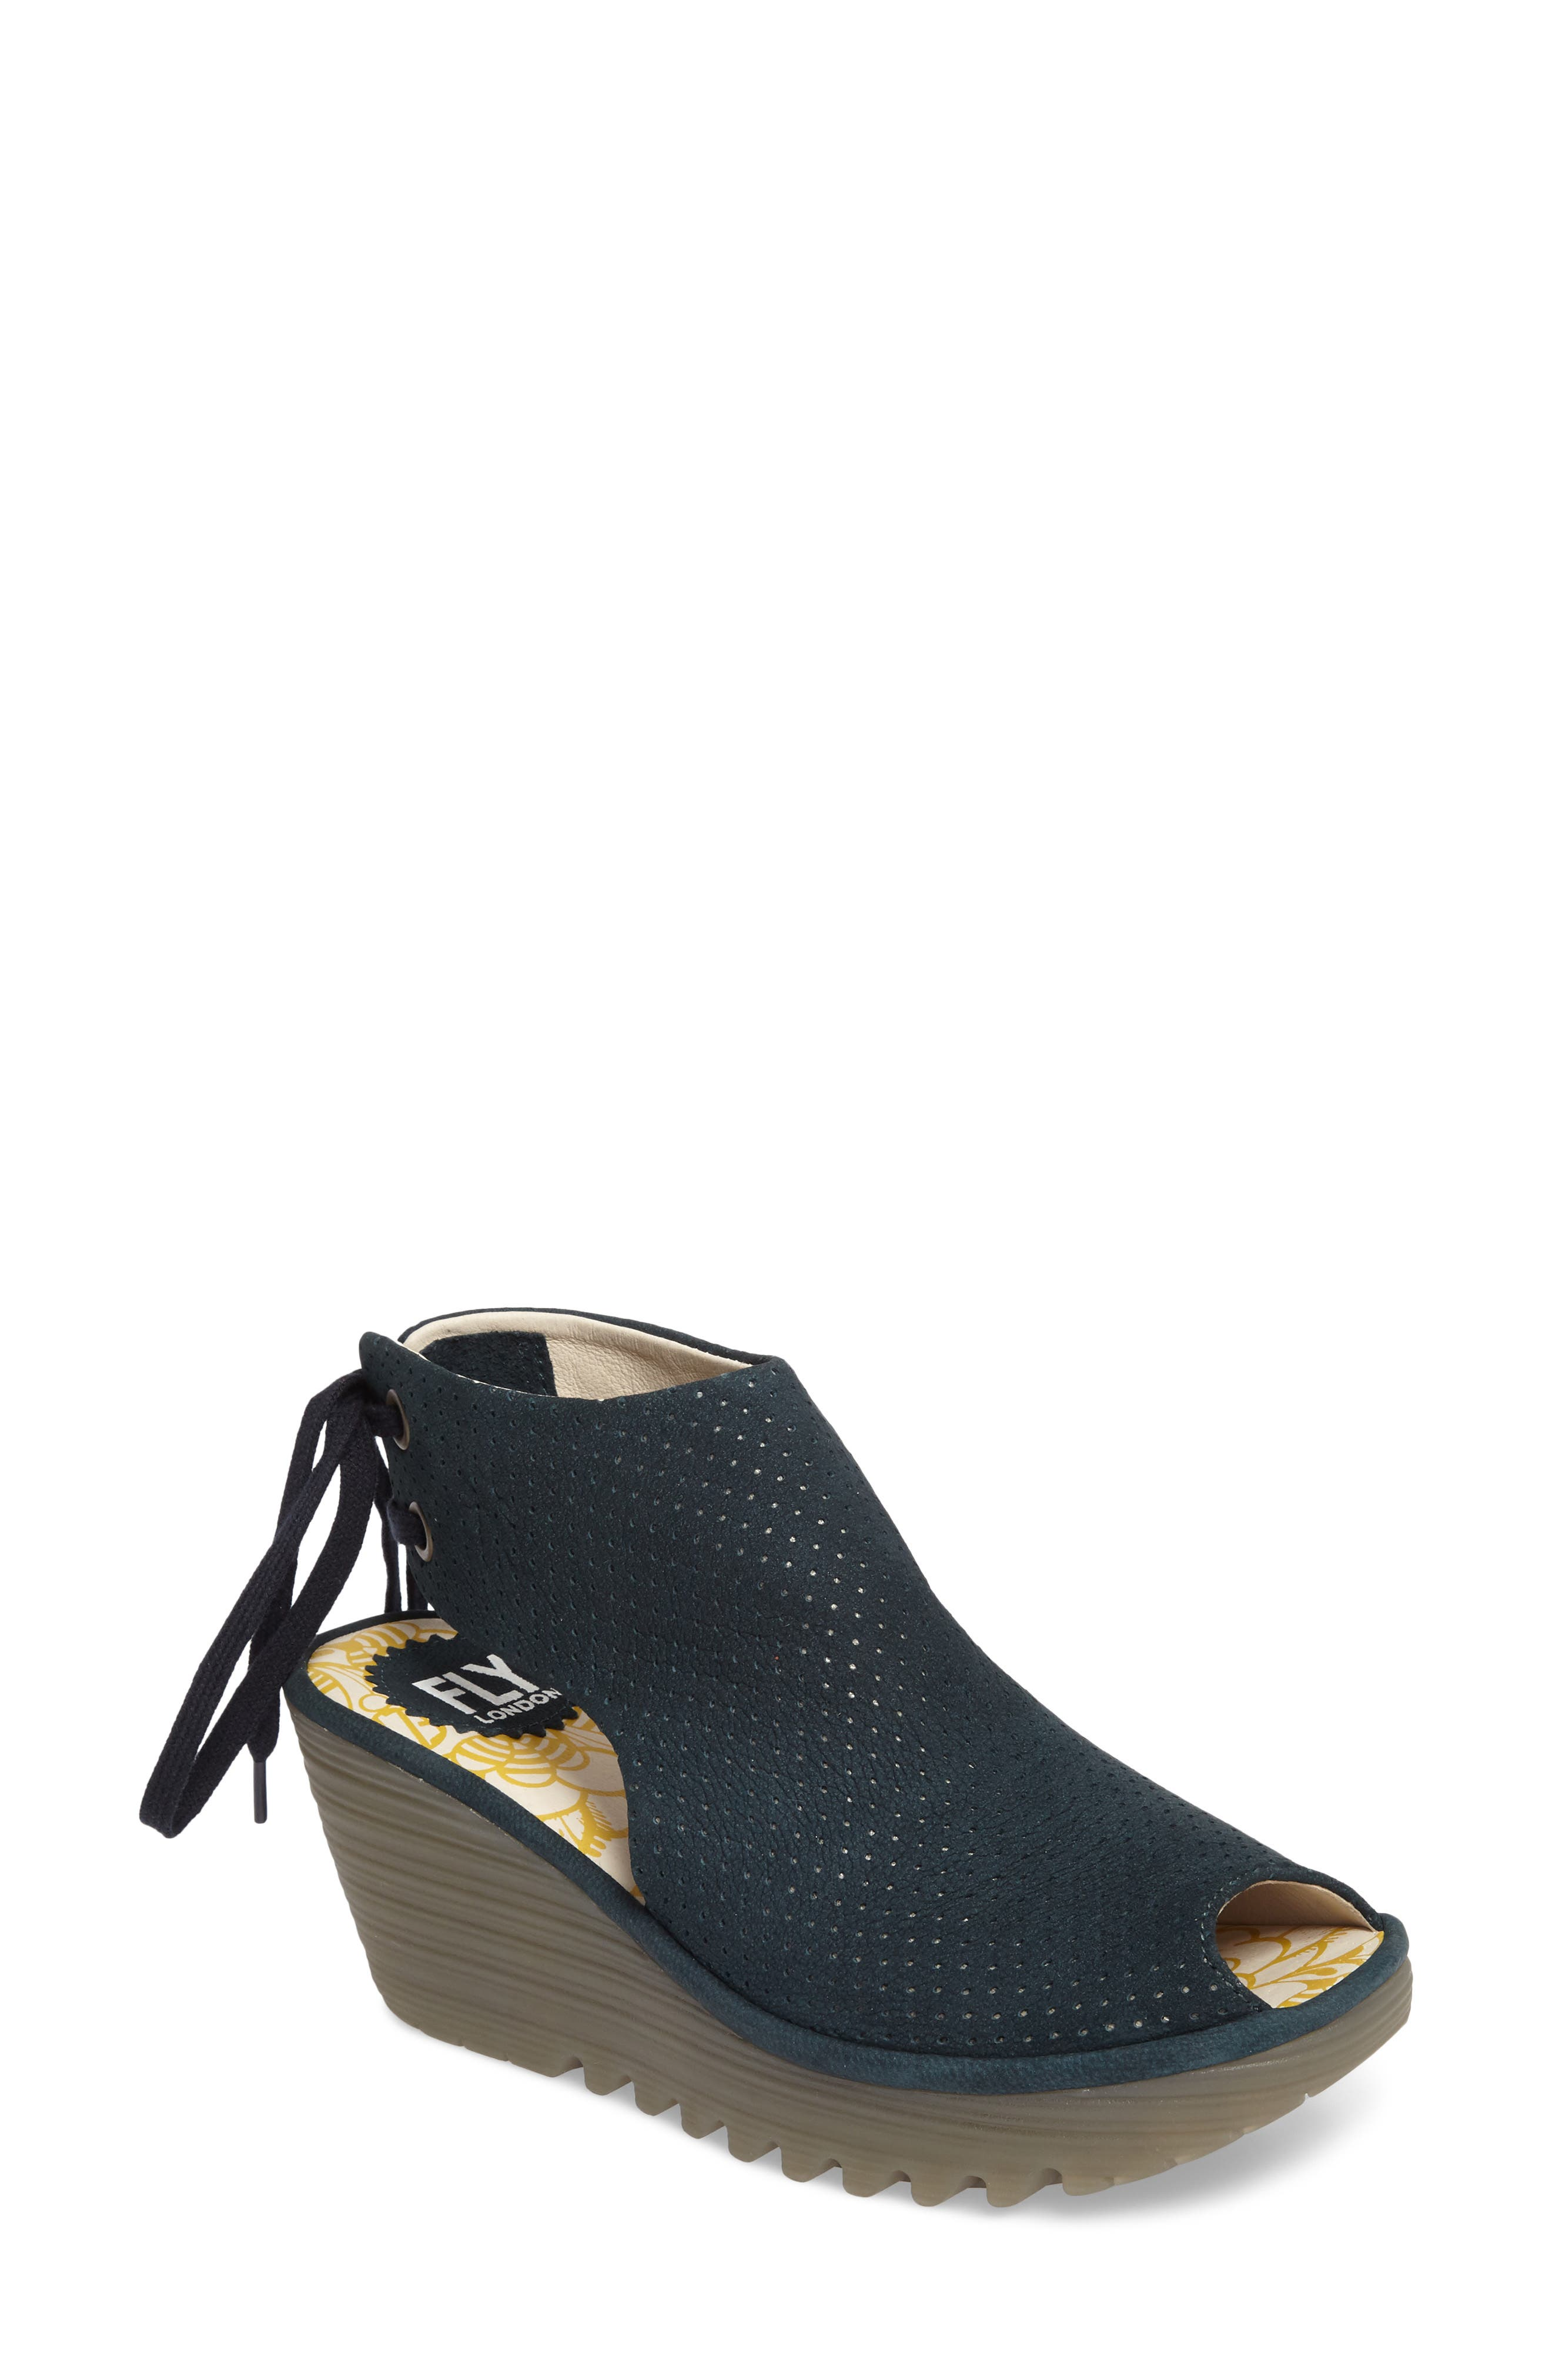 Ypul Wedge Sandal,                         Main,                         color, Reef Cupido Leather